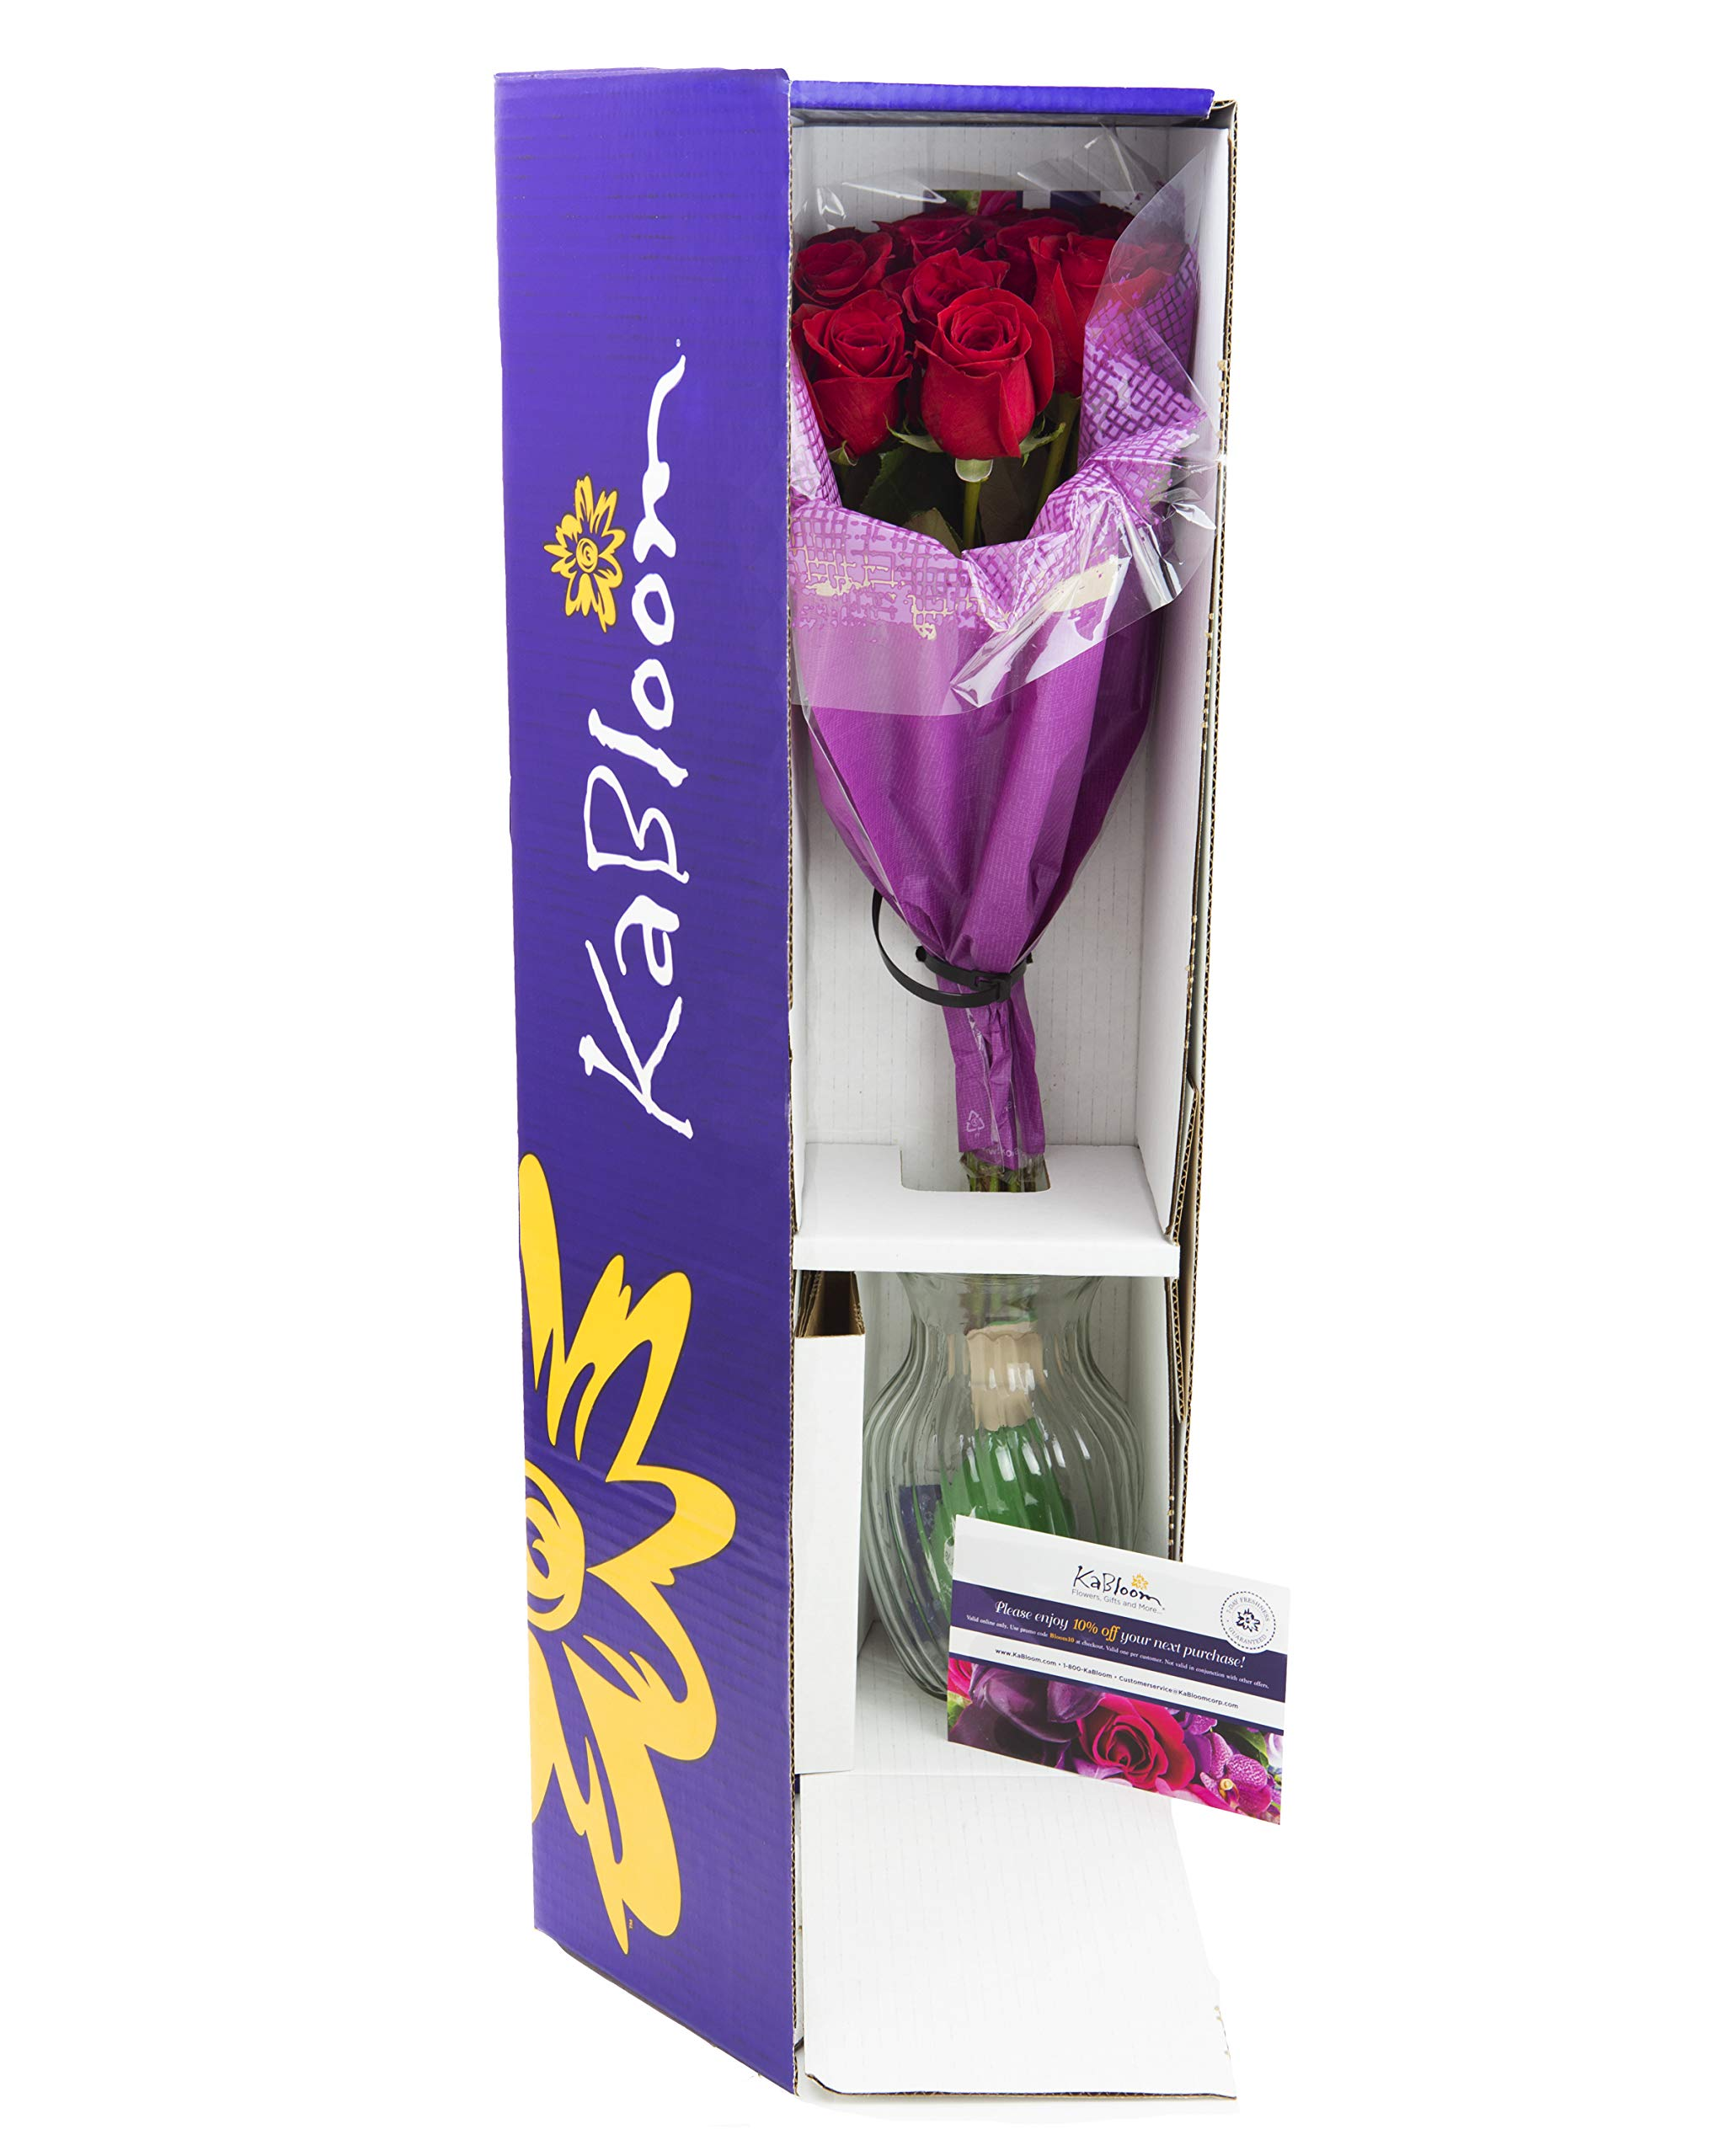 KaBloom The Romantic Classic Bouquet of 12 Fresh Red Roses (Farm-Fresh, Long-Stem) with Vase by KaBloom (Image #2)